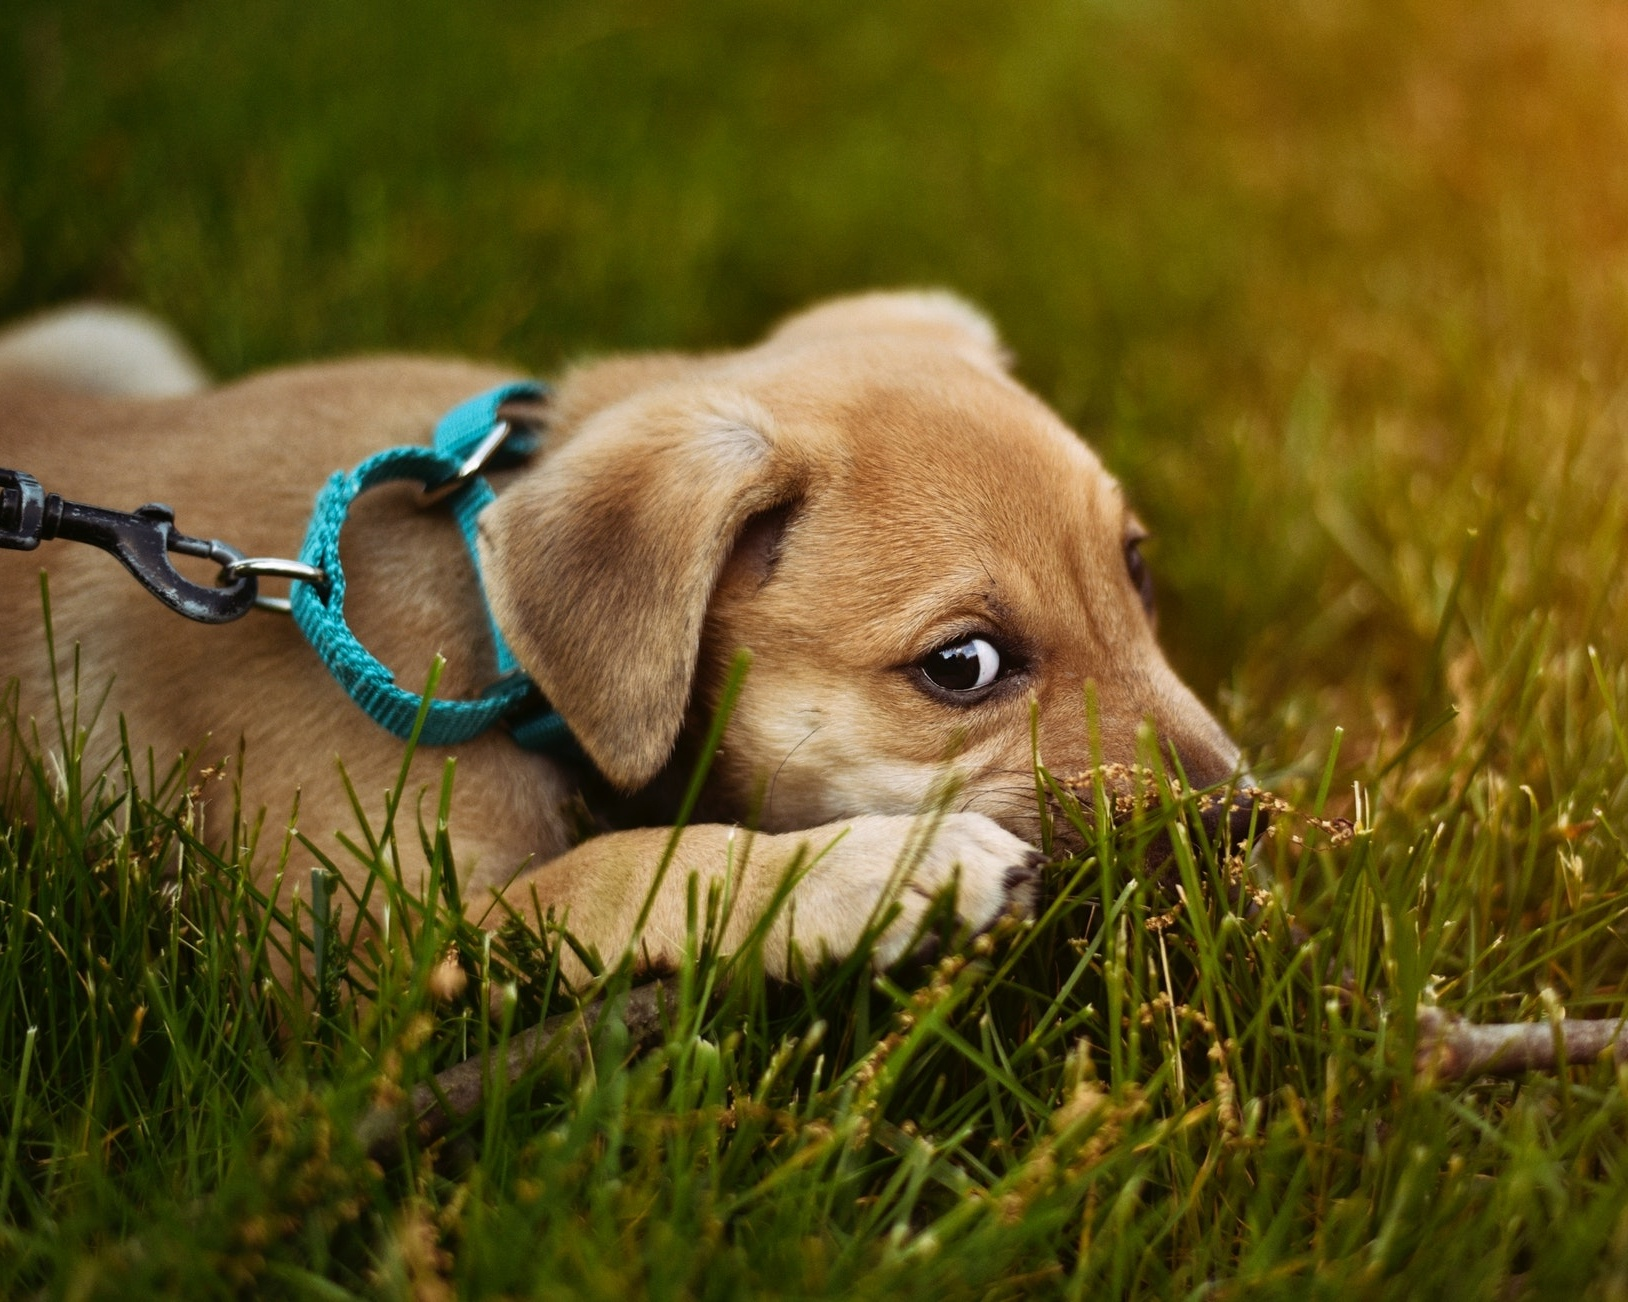 puppy-lying-grass.jpeg